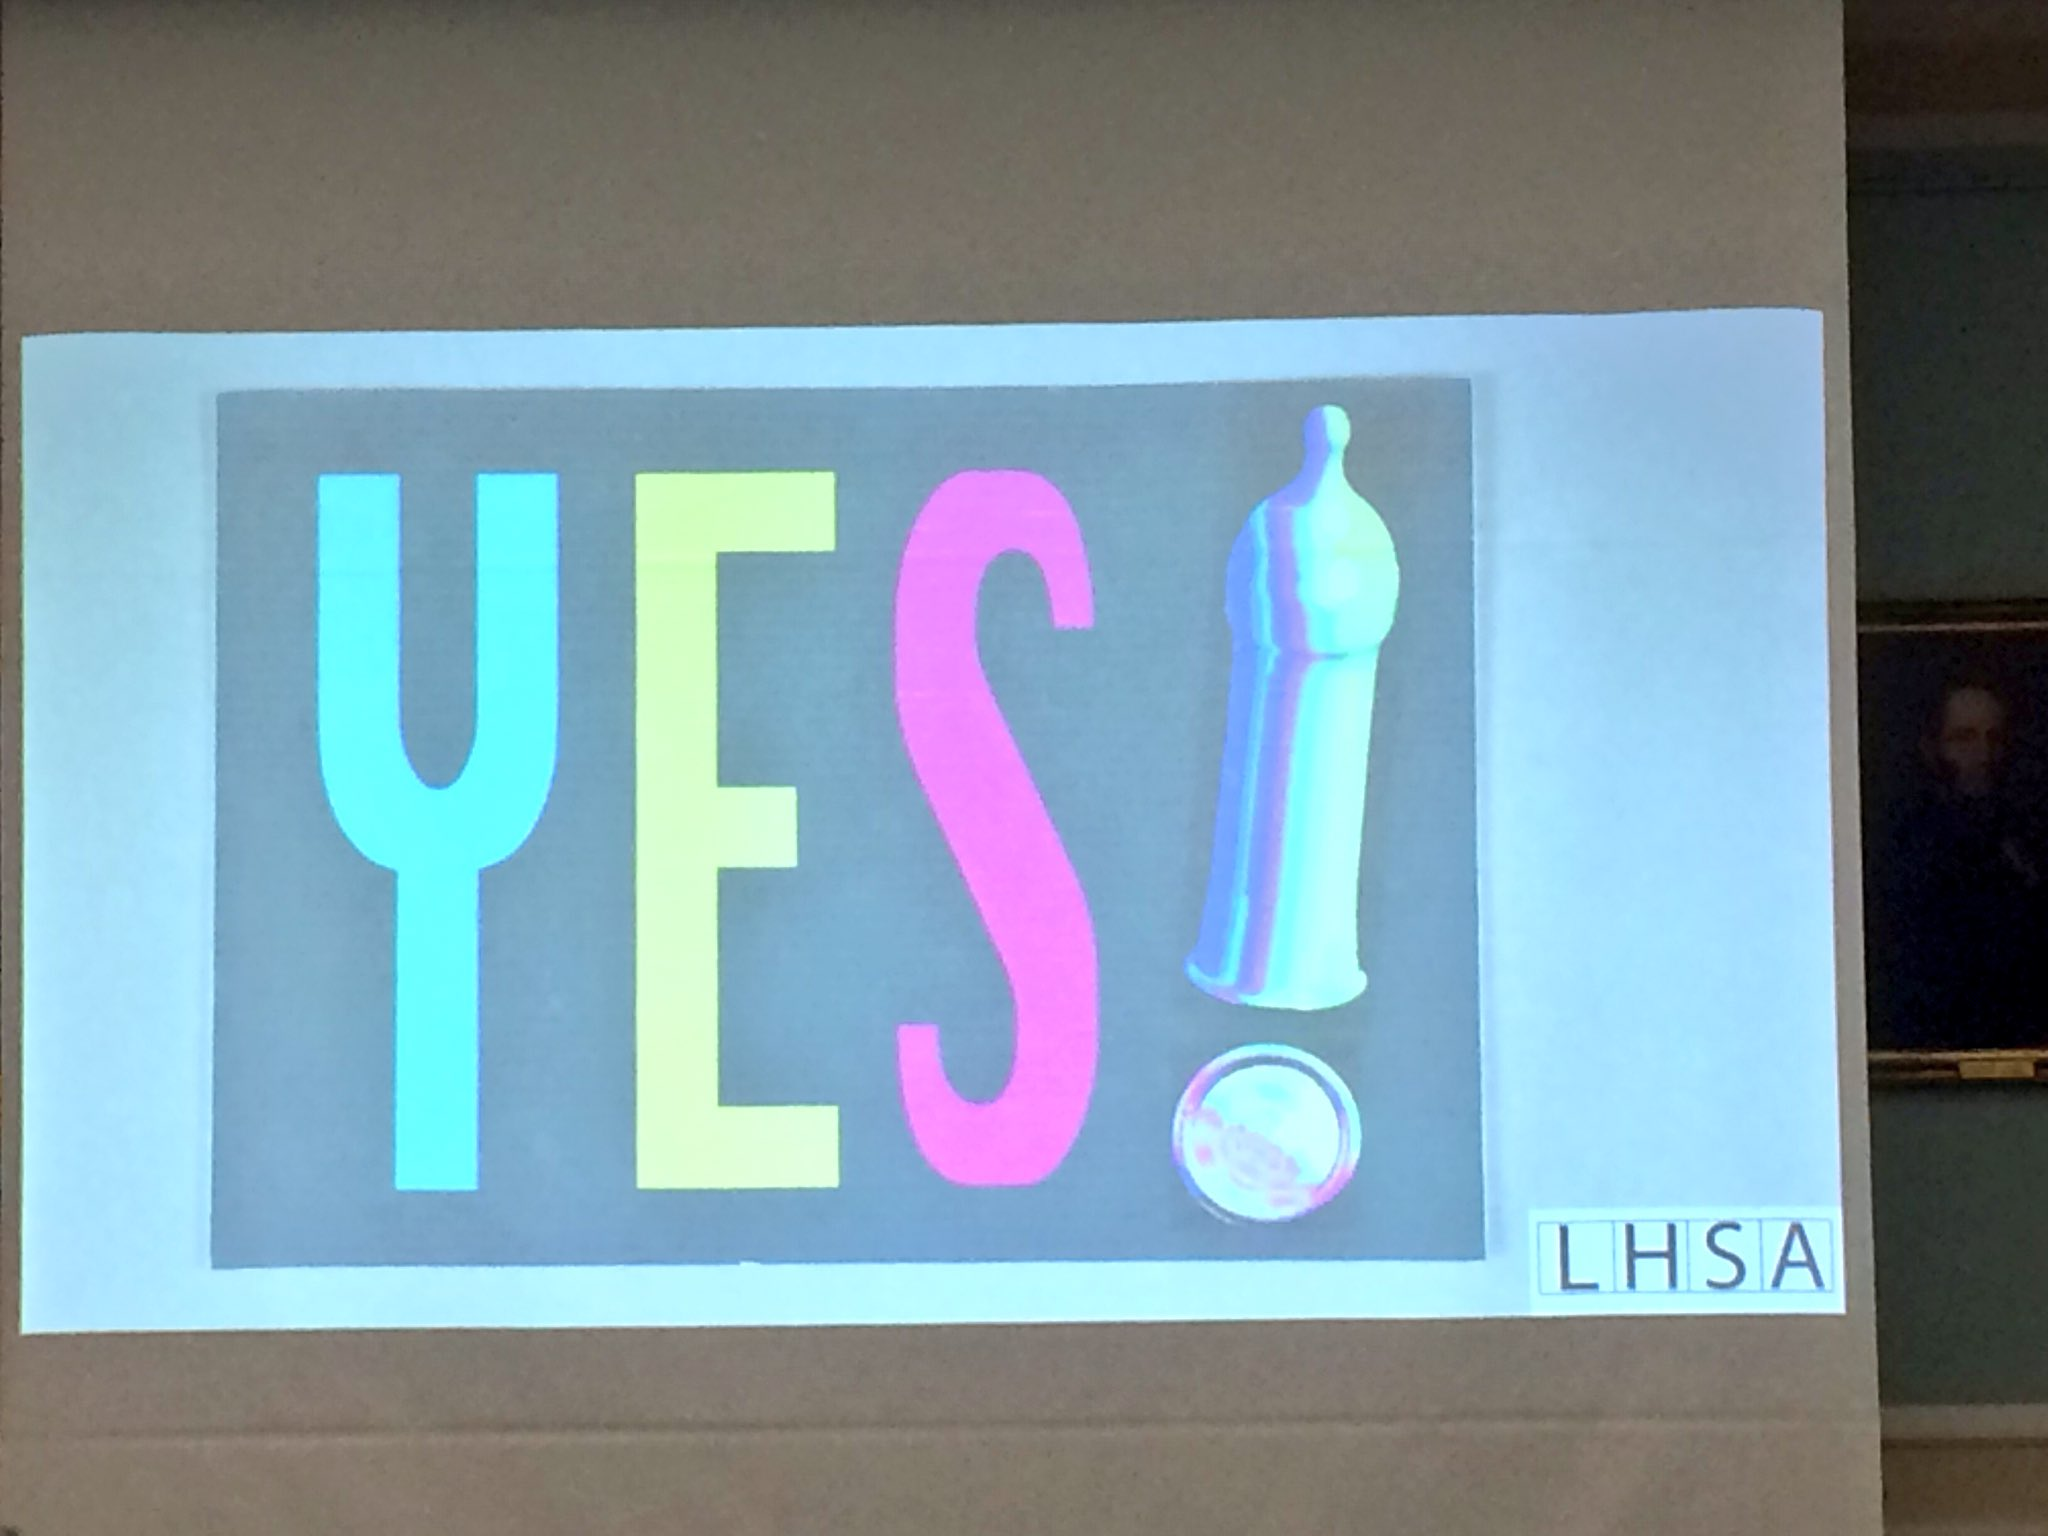 Doyle - LHSA includes Lothian's HIV & AIDS Archive #histmed3 #fcl17 https://t.co/X2yPPMryuf